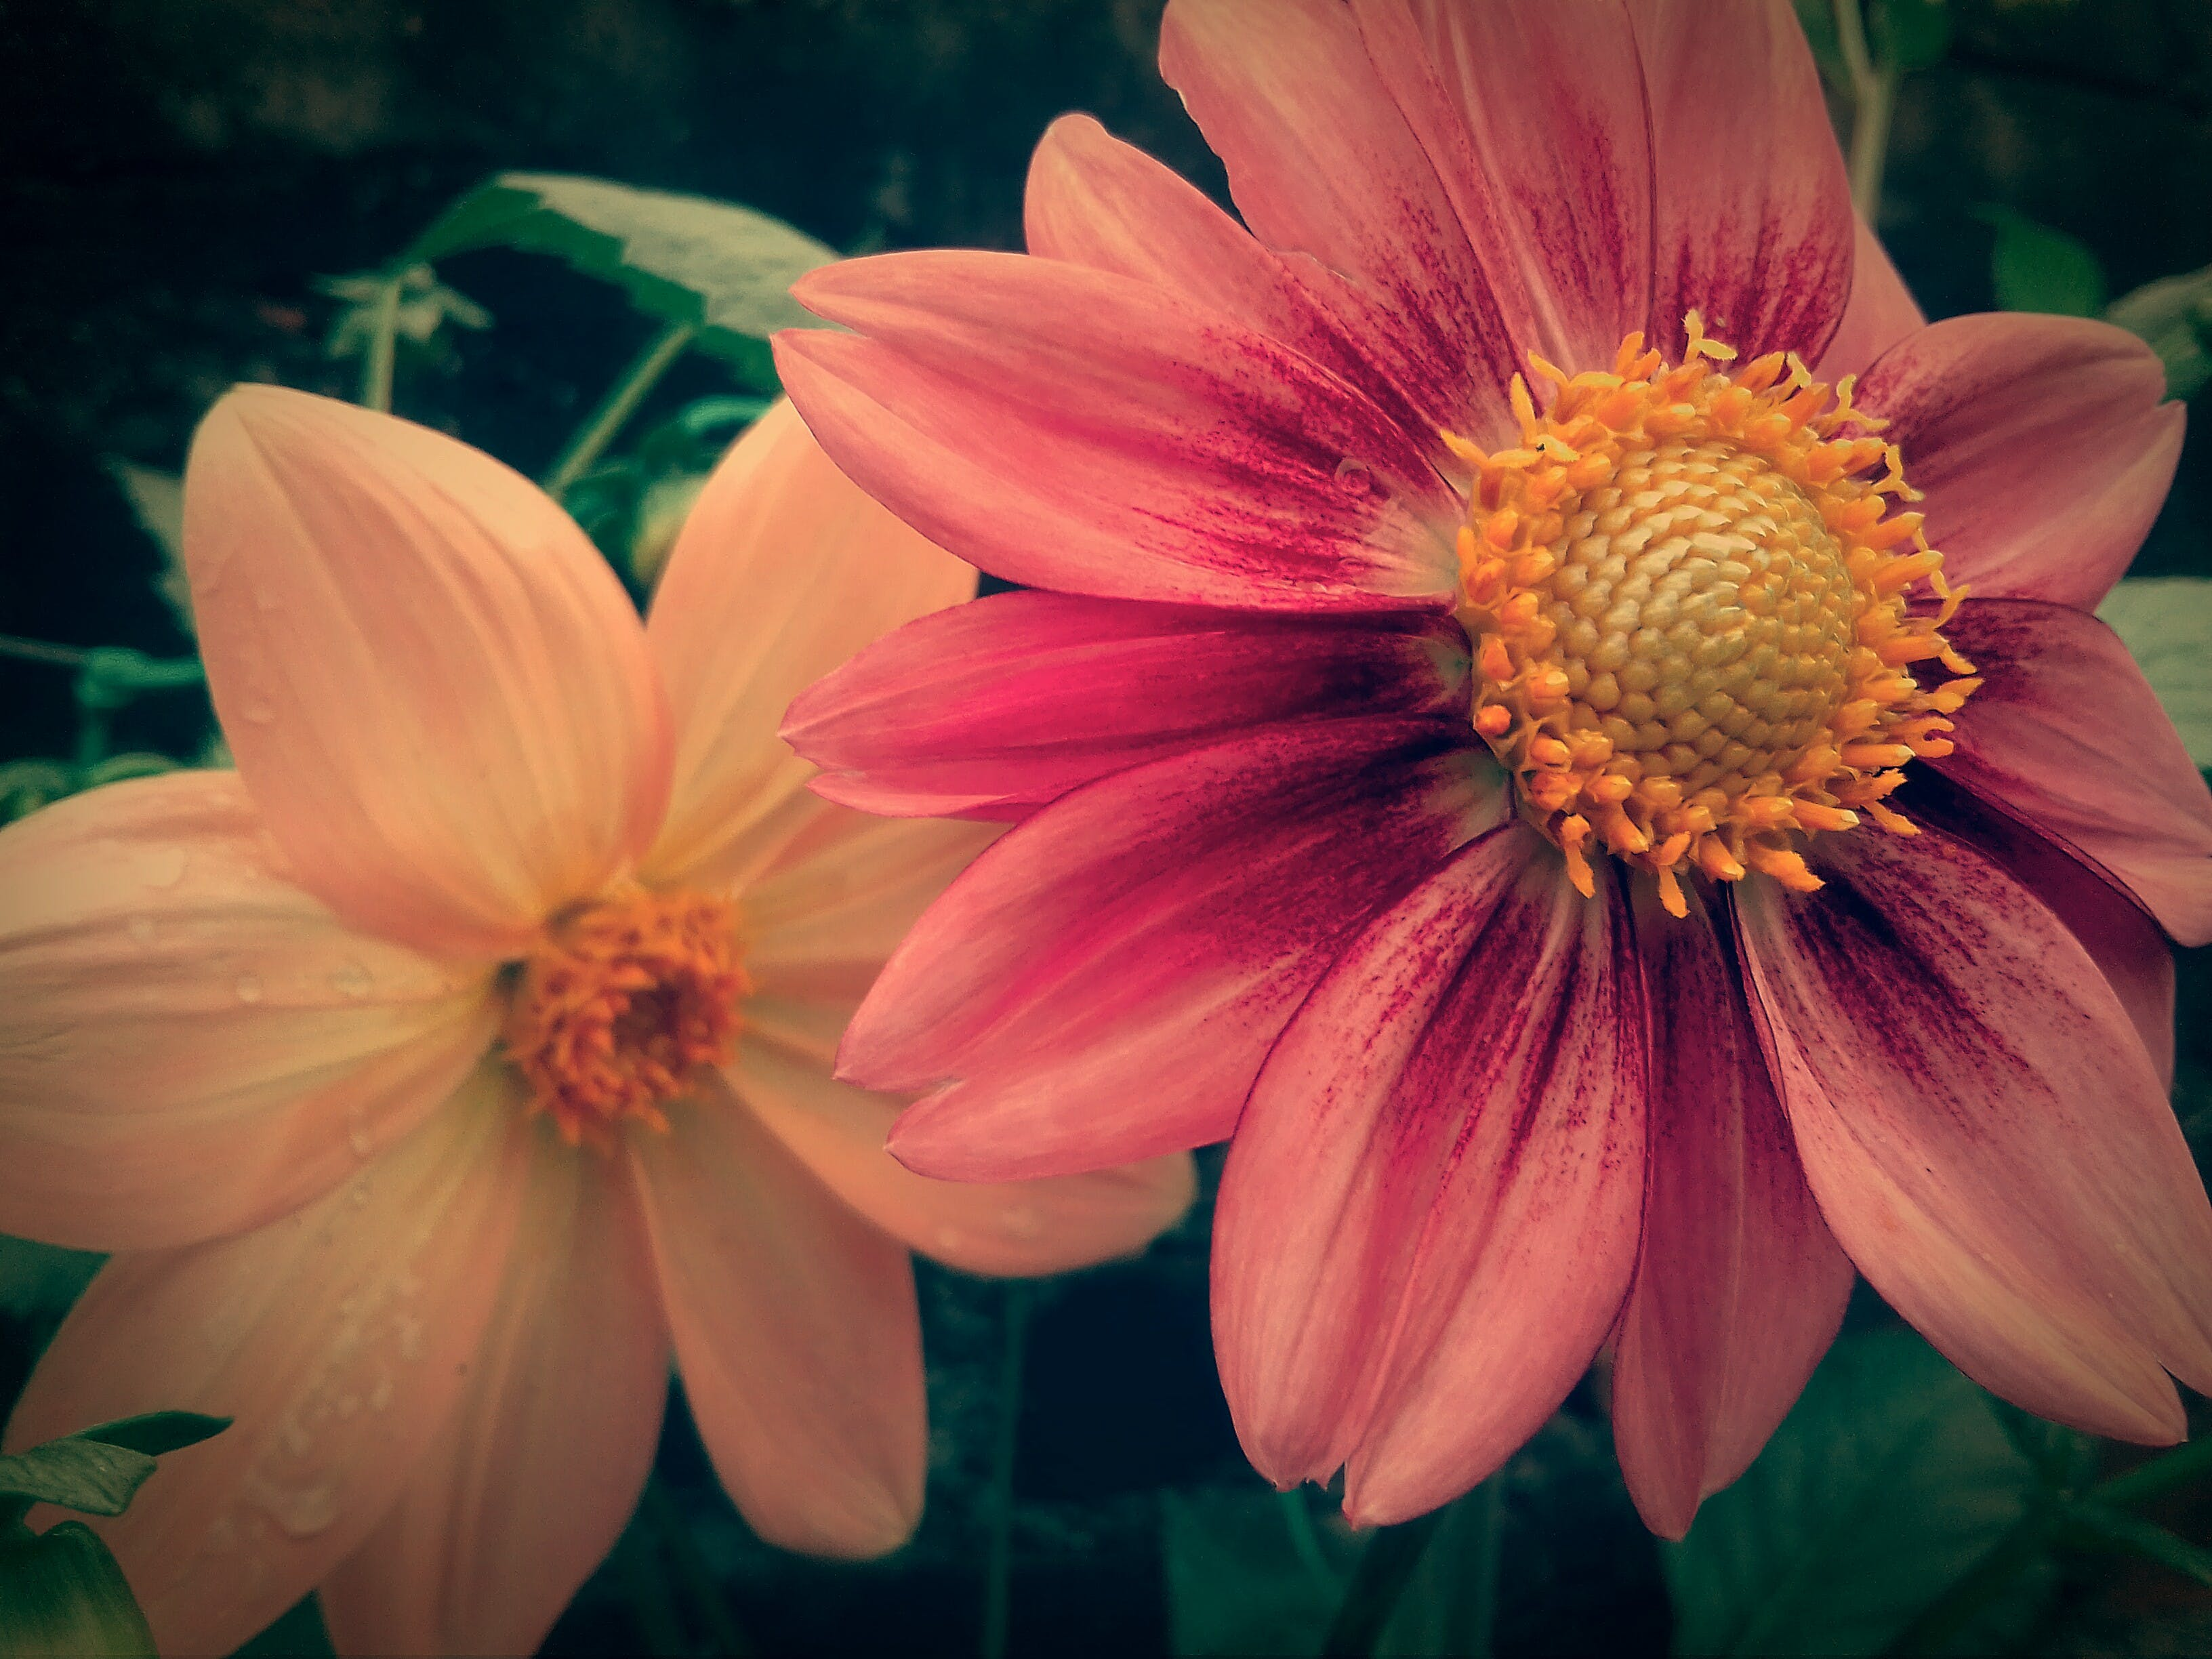 Free stock photo of android wallpaper, background image, beautiful flower, beautiful flowers